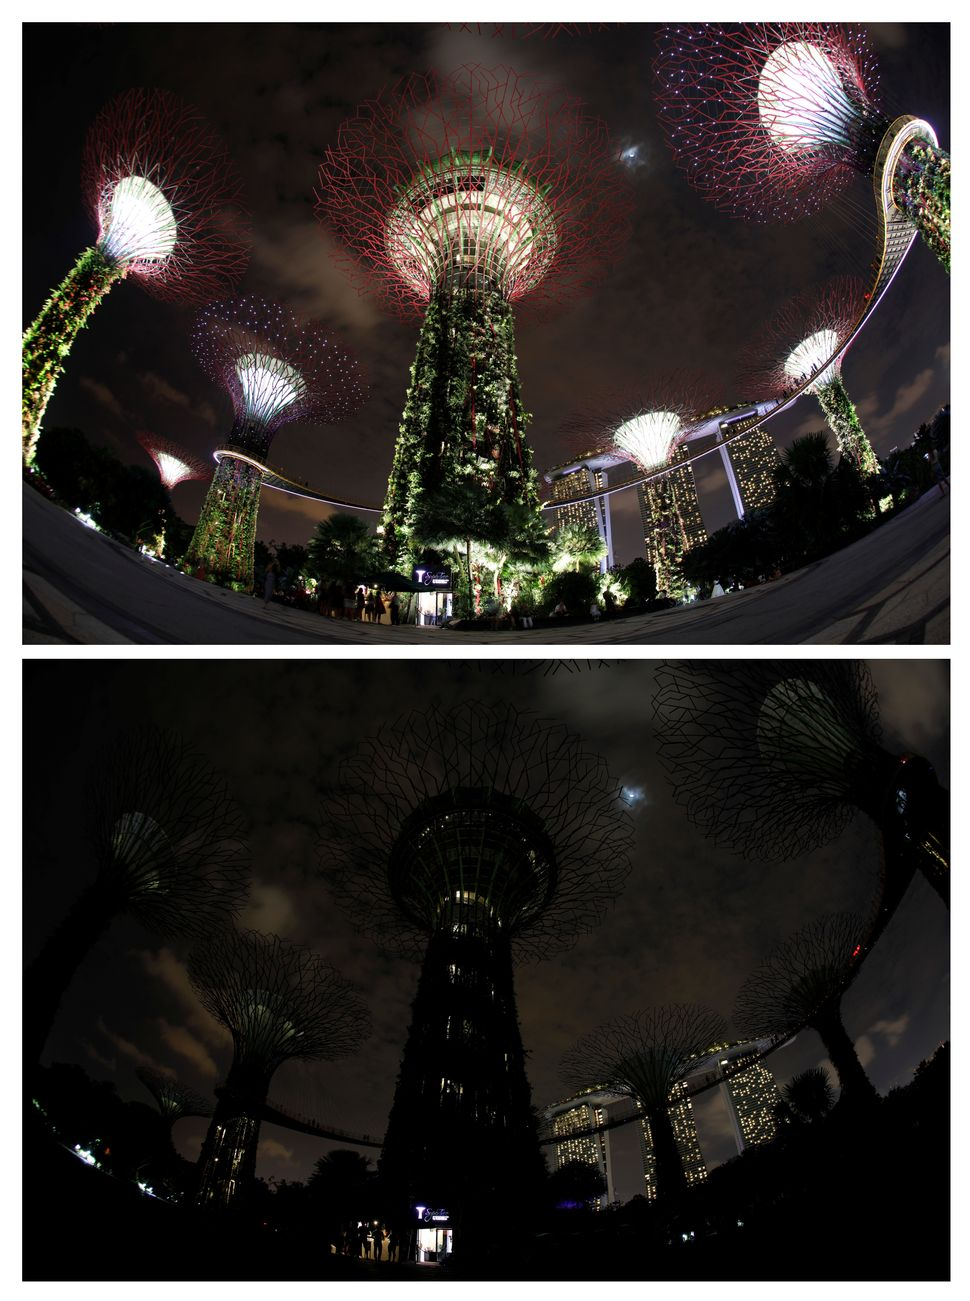 Giant concrete tree-like structures called 'Supertrees' are seen before (top) and after the lights were dimmed to mark E